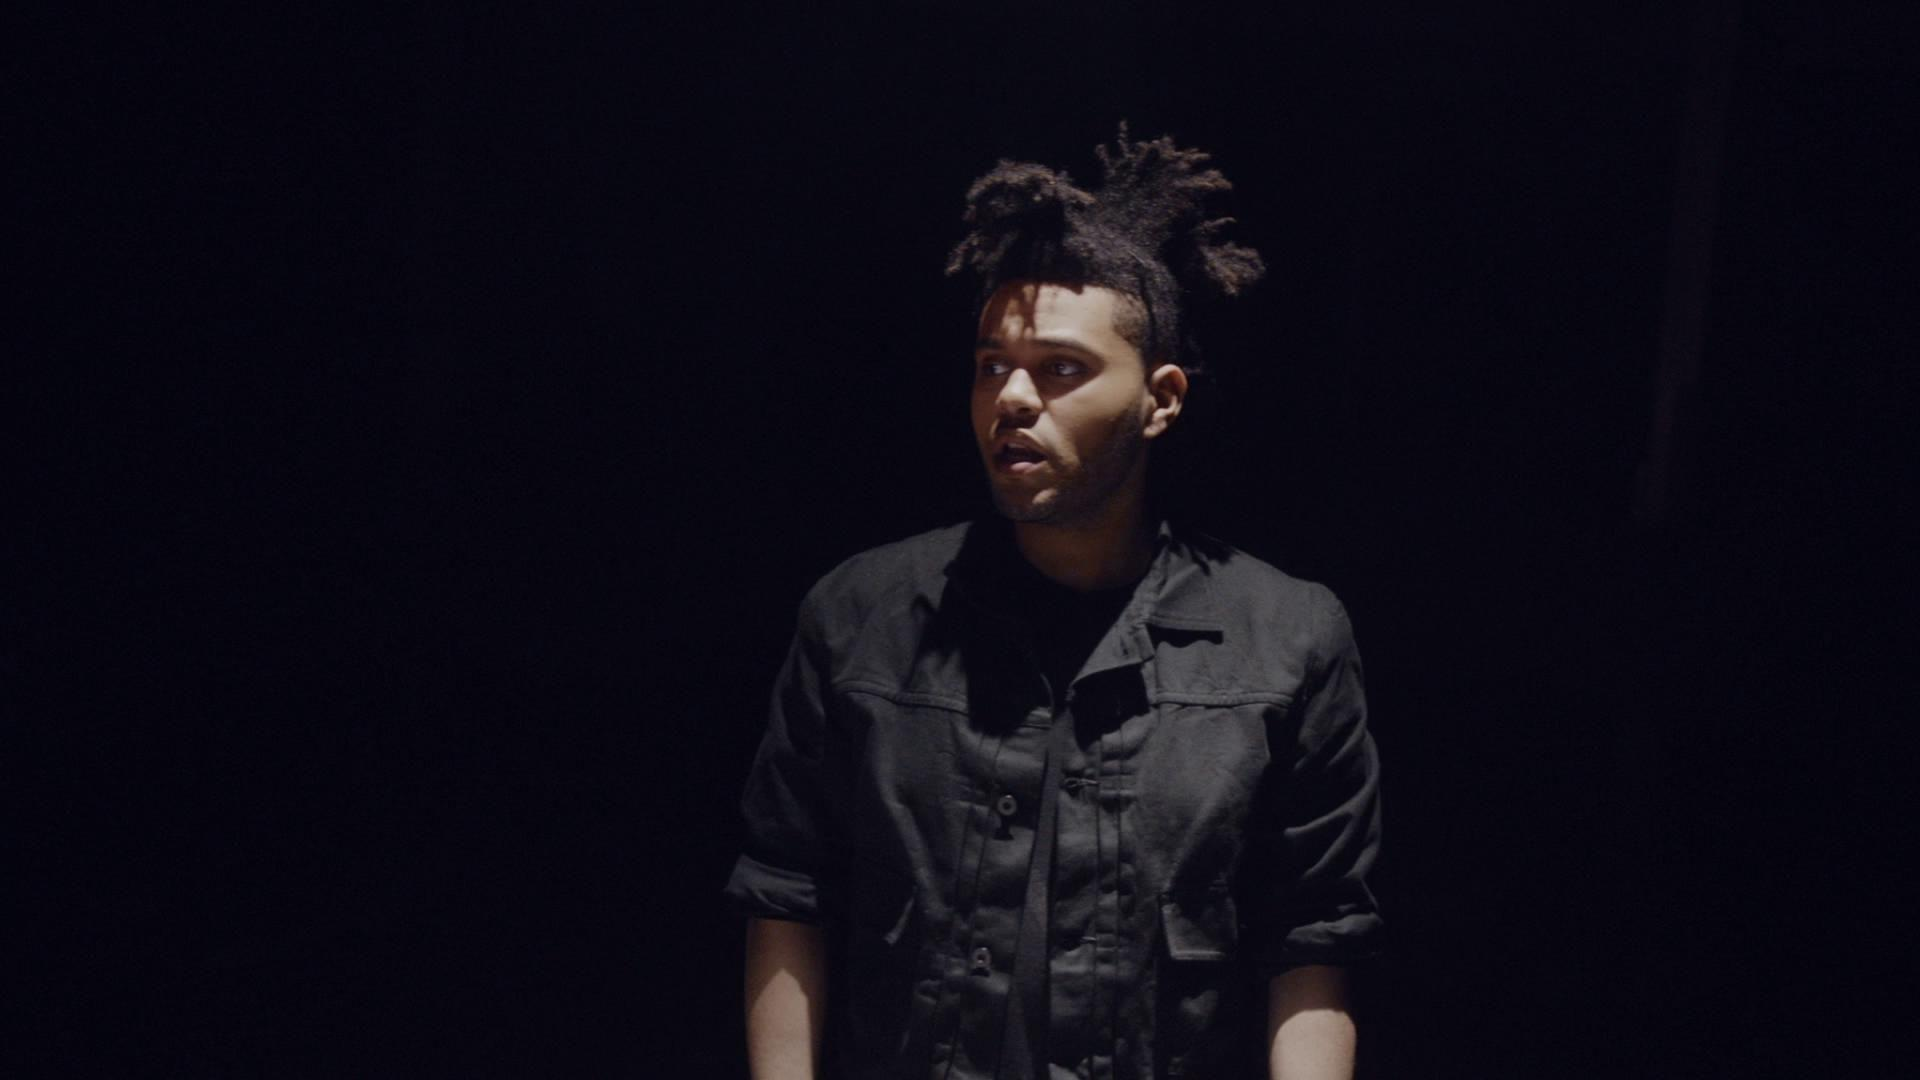 Best The Weeknd Wallpapers, Wide HQFX Pics Collection